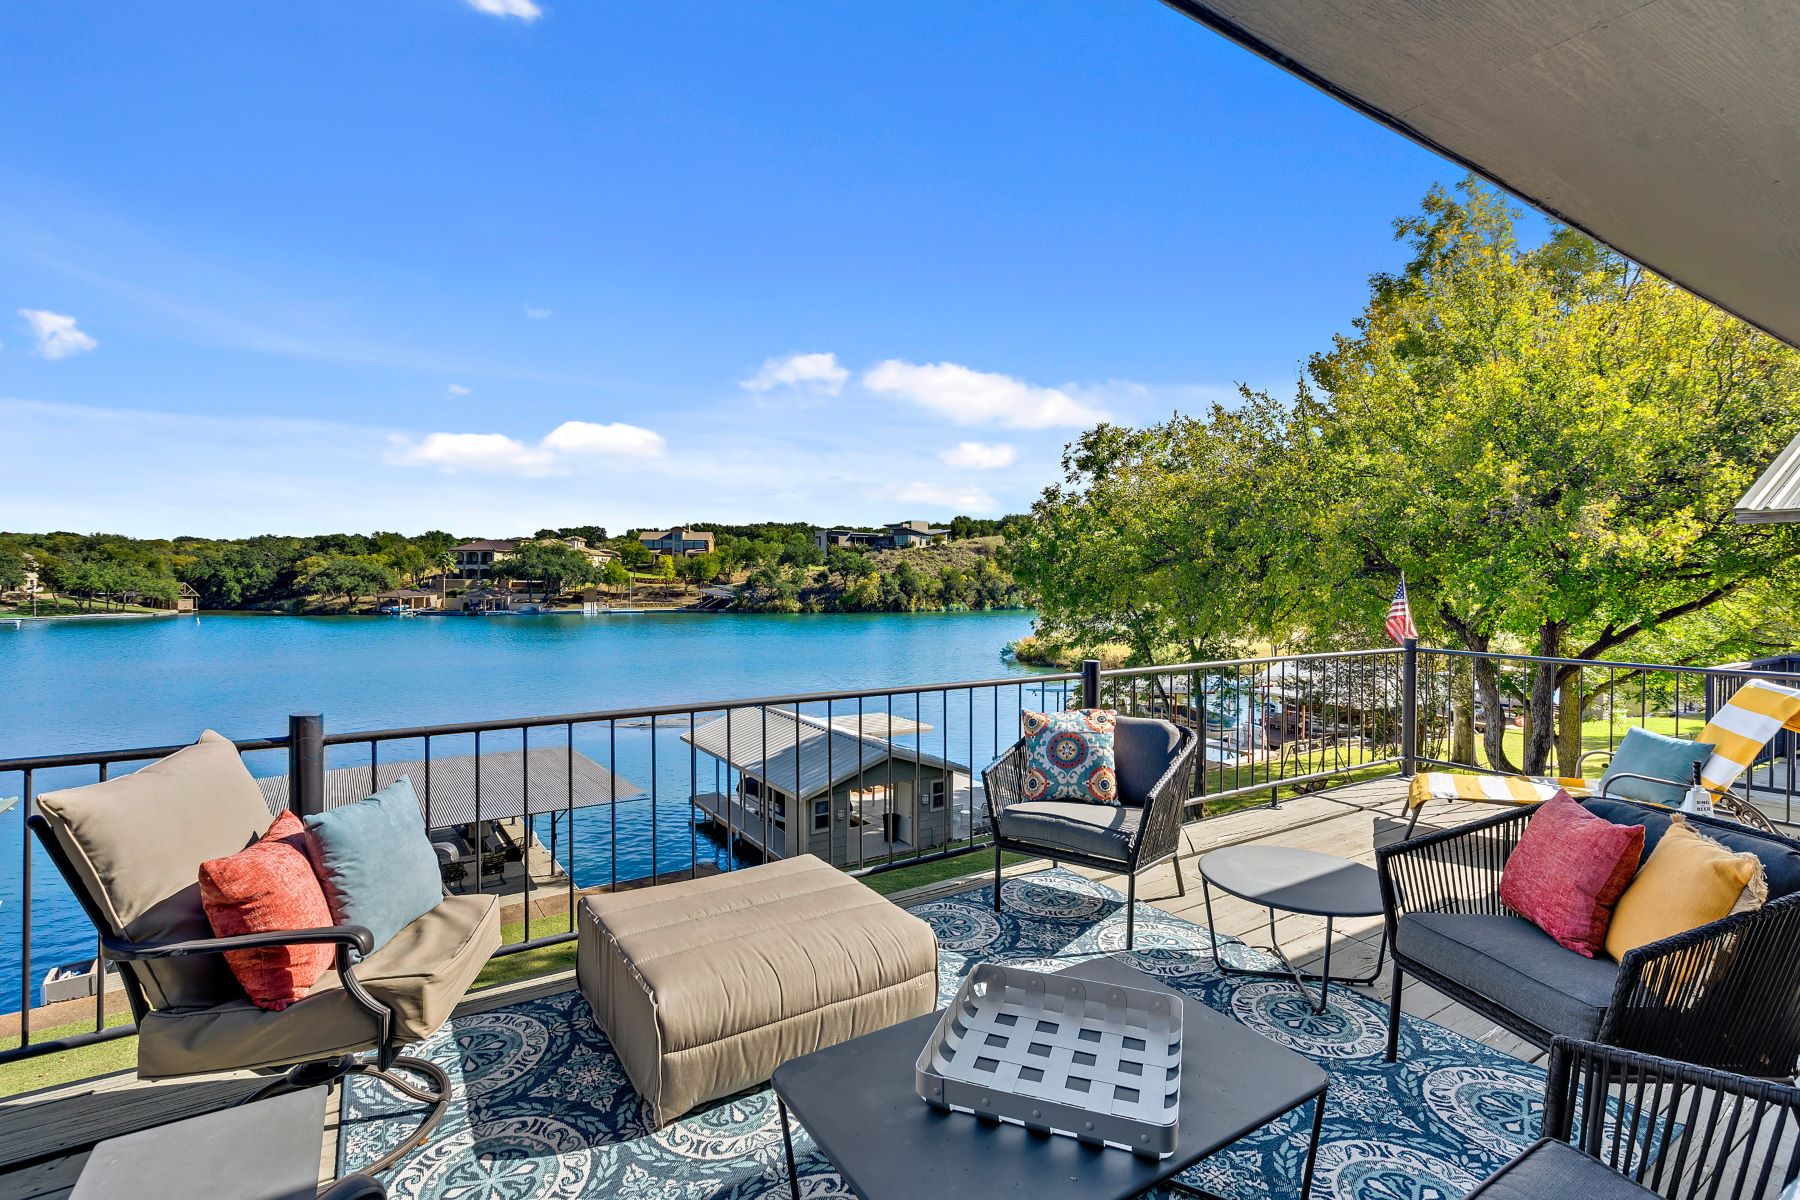 Single Family Homes for Sale at Lake Living on Lake LBJ 804 Sunrise Lane on Lake LBJ Sunrise Beach, Texas 78643 United States